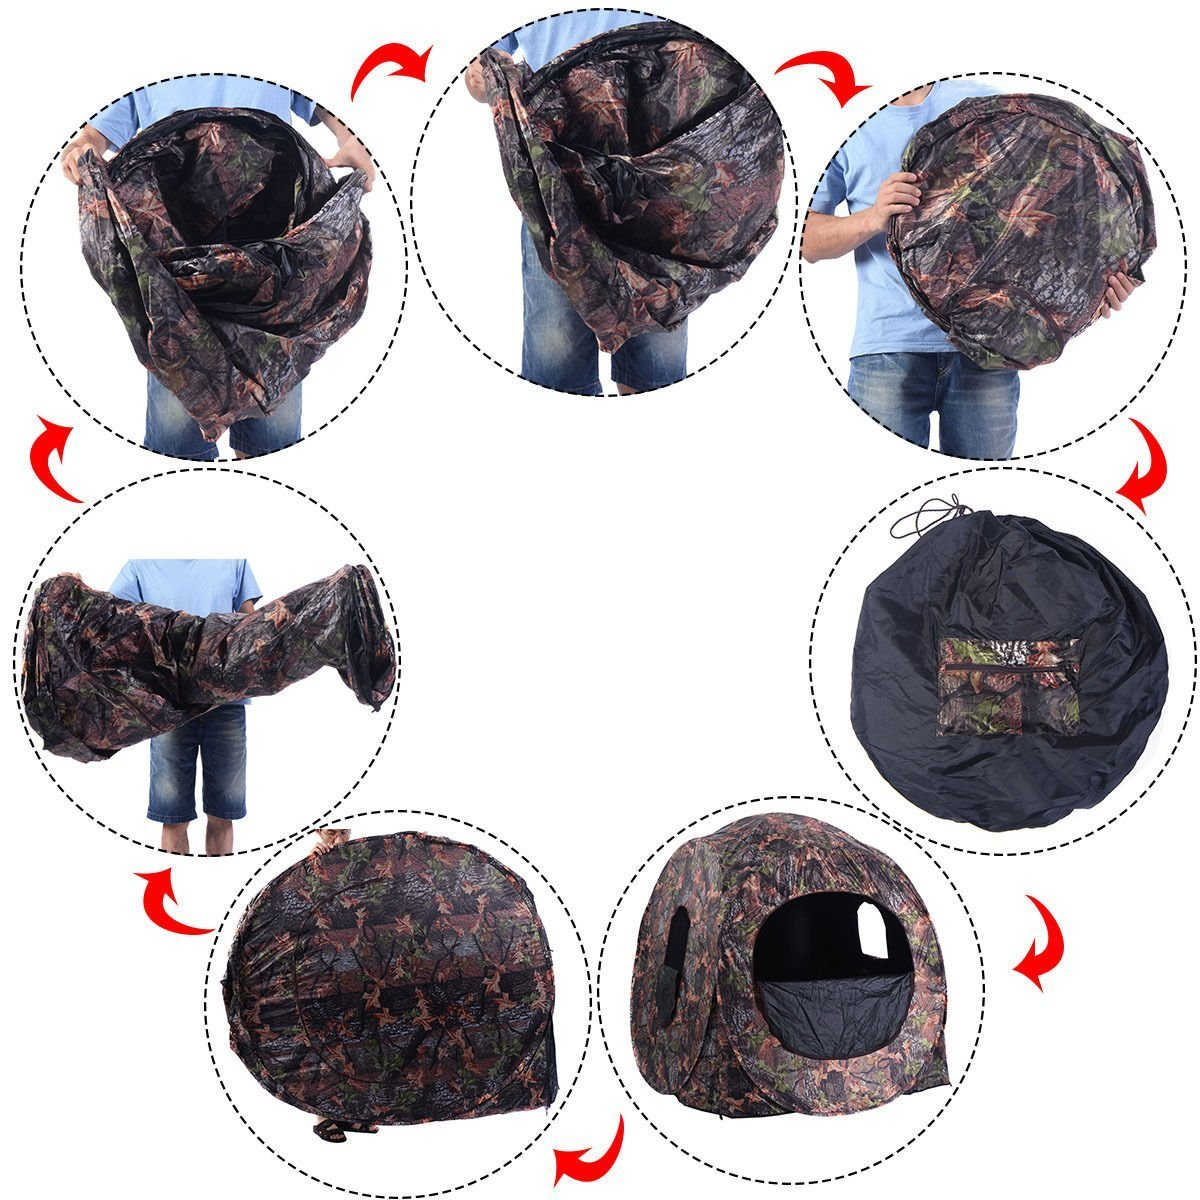 Tangkula Hunting Tent Portable Hunting Blind Pop Up Ground Blind 2-3 People Camo Waterproof with Backpack Hunting Enclosure by Tangkula (Image #6)